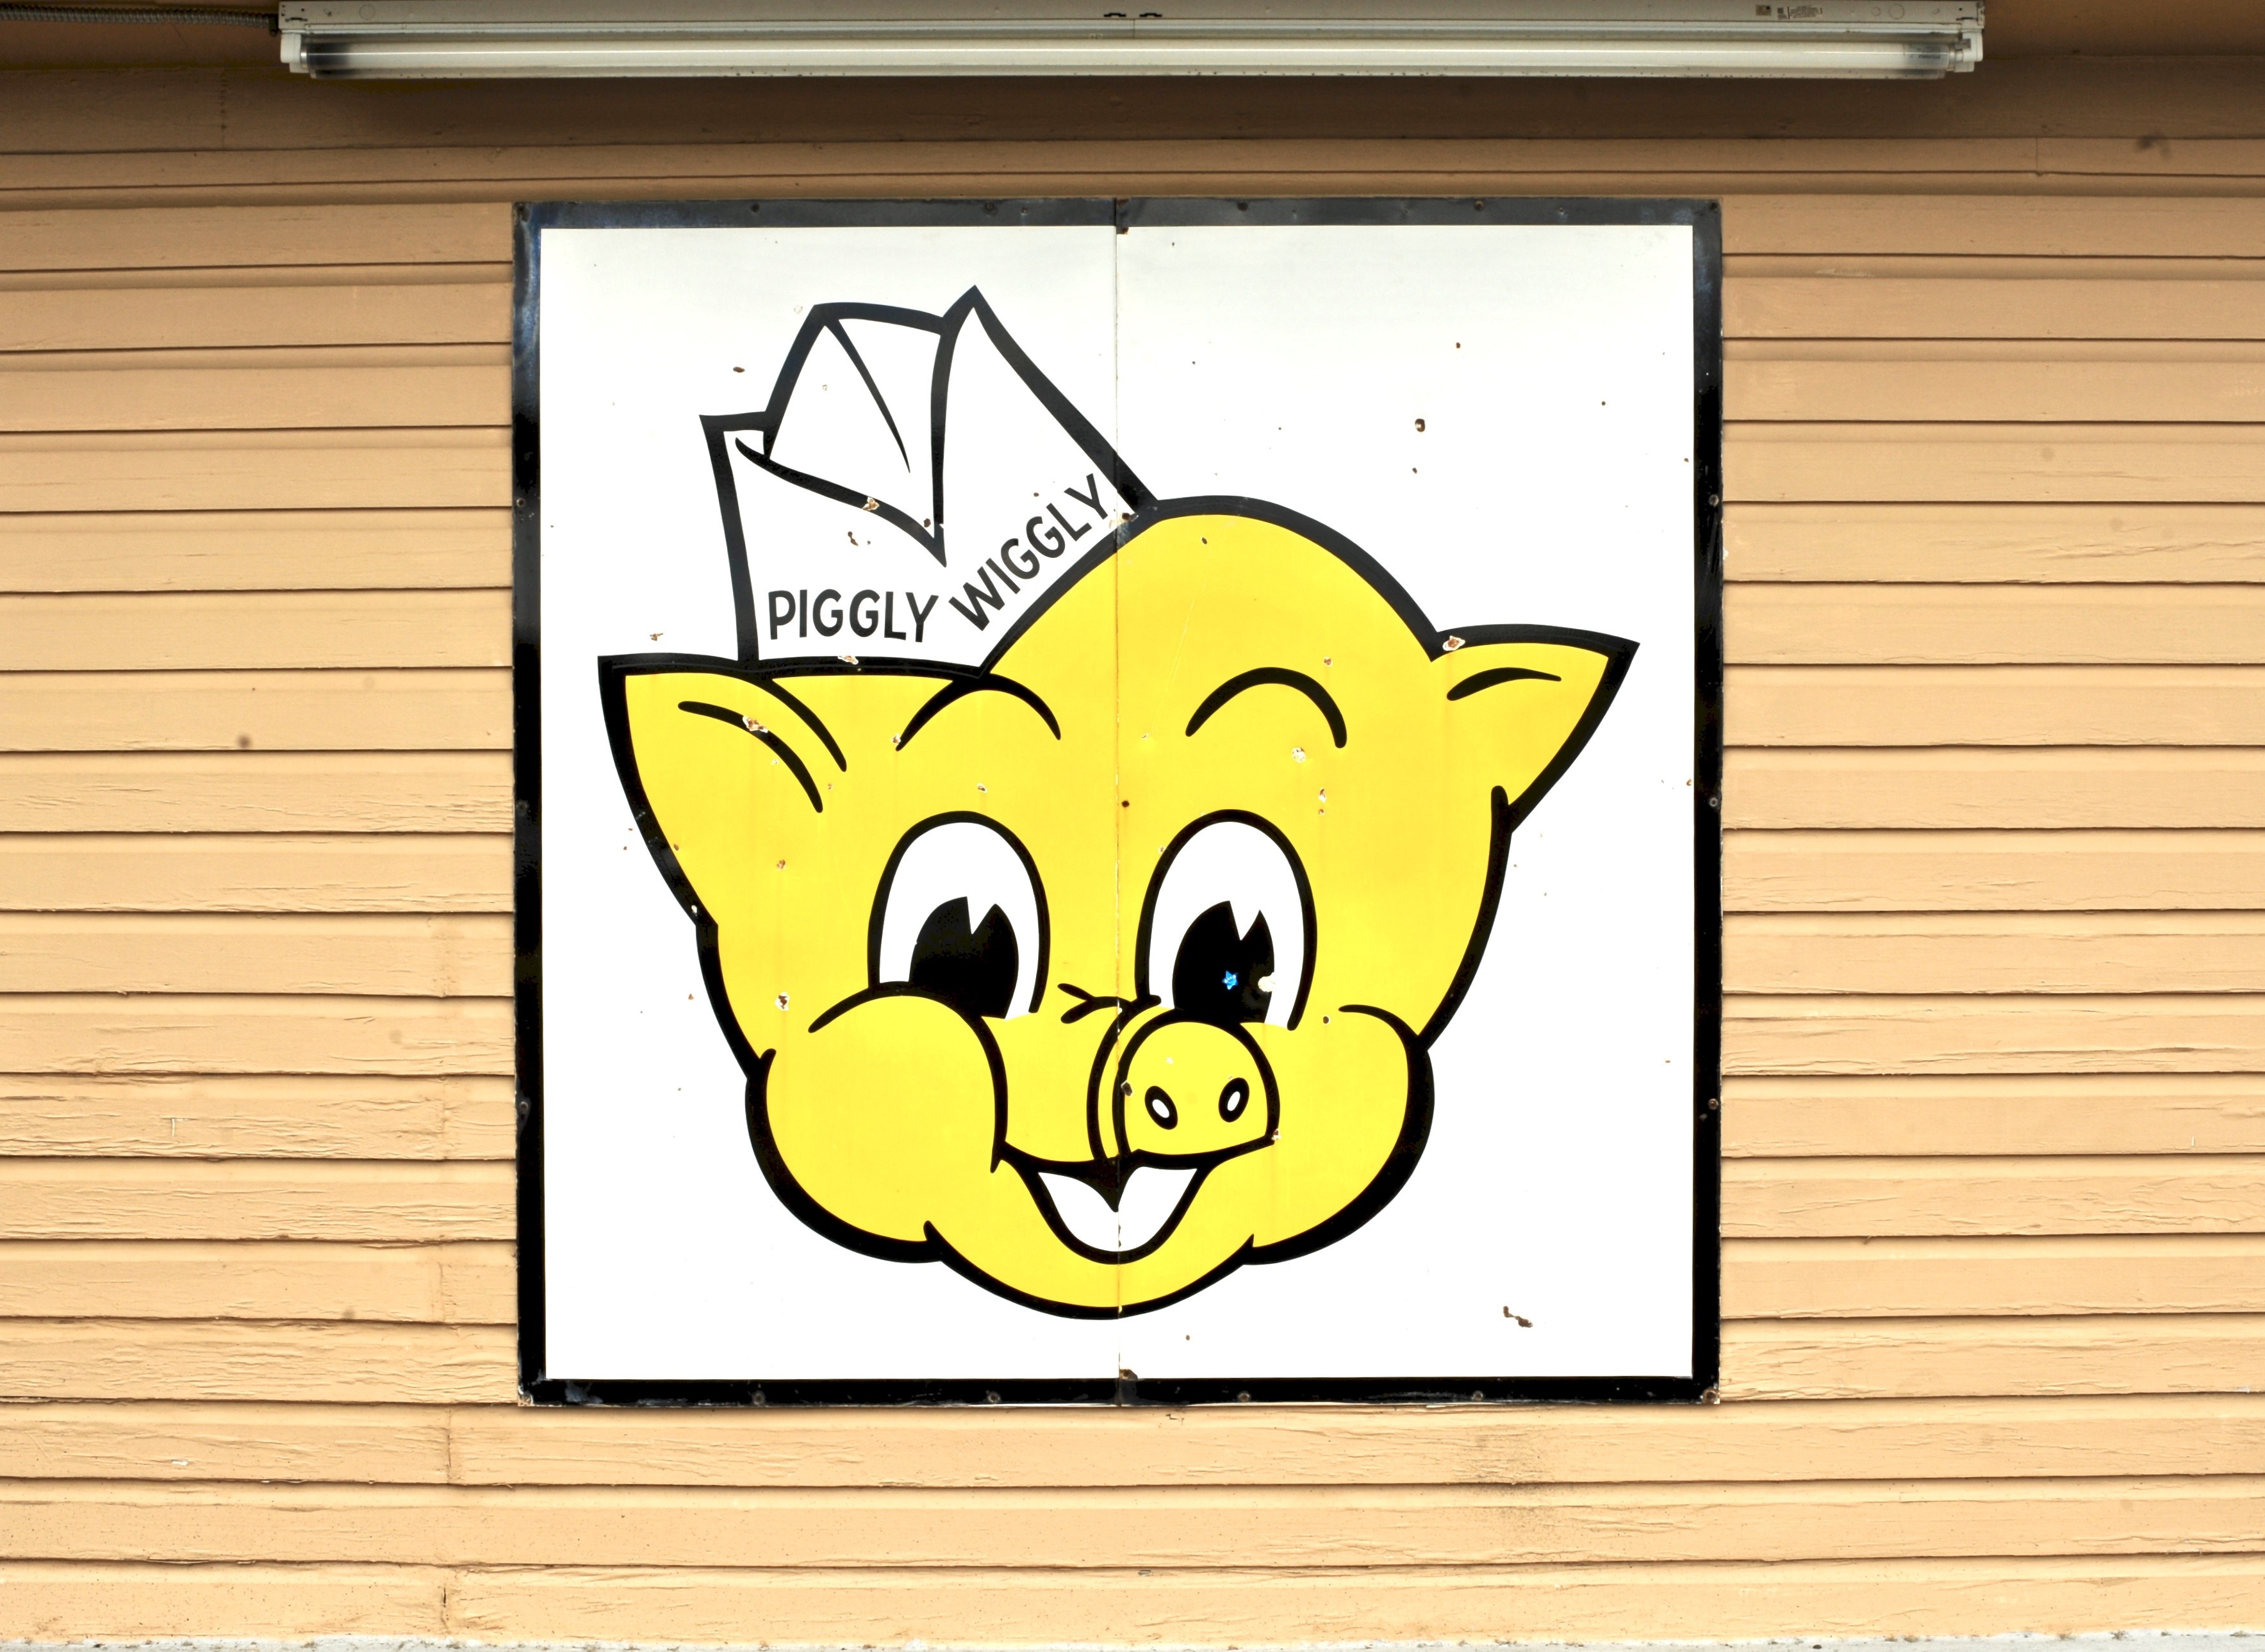 Piggly Wiggly - Ferriday, Louisiana U.S.A. - July 7, 2013